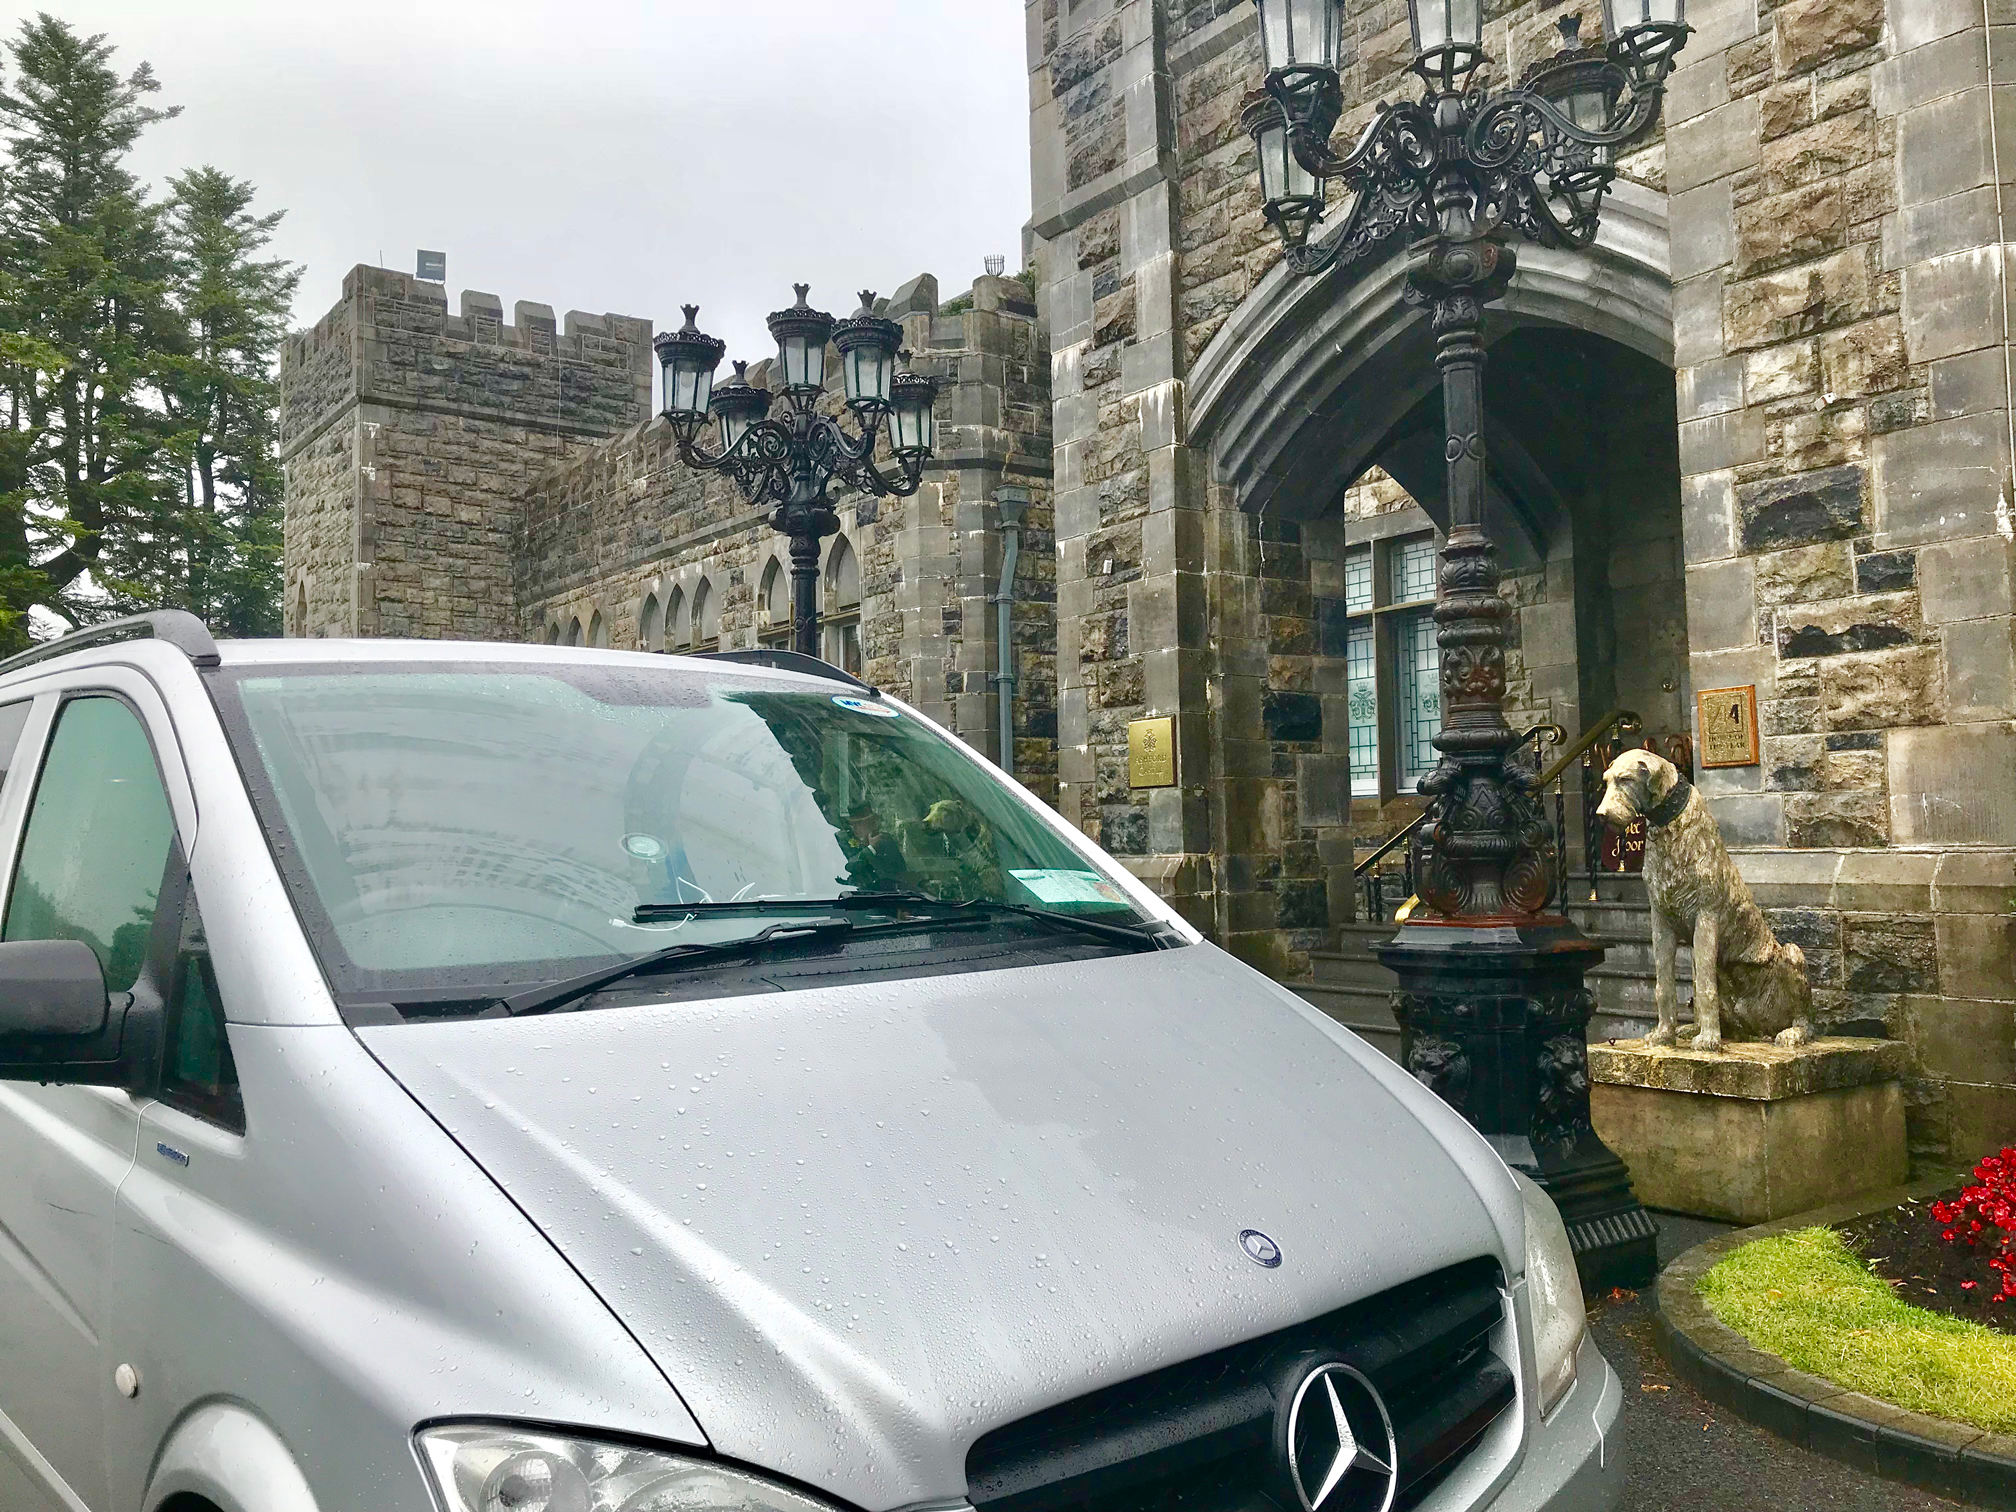 An Essential Ireland Castles and Classics Tour arriving at Ashford Castle